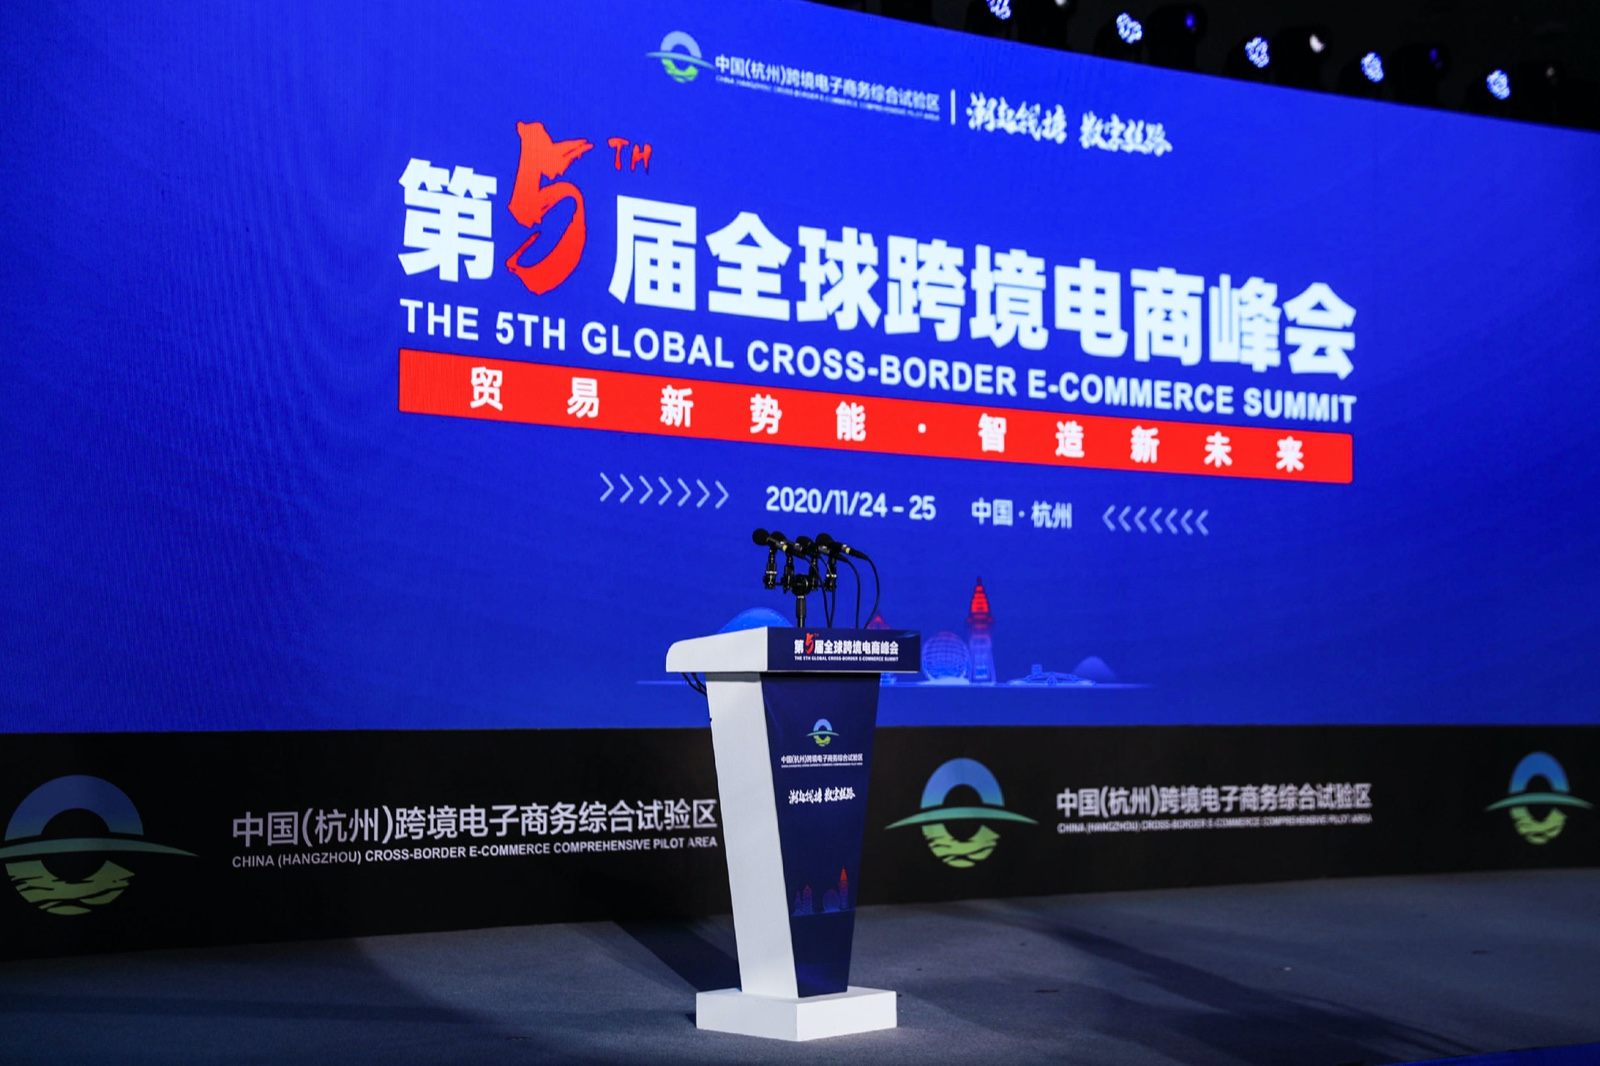 Hangzhou Cross-border E-commerce Comprehensive Experimental Zone Office Reaching A Comprehensive Strategic Relationship with Rakuten